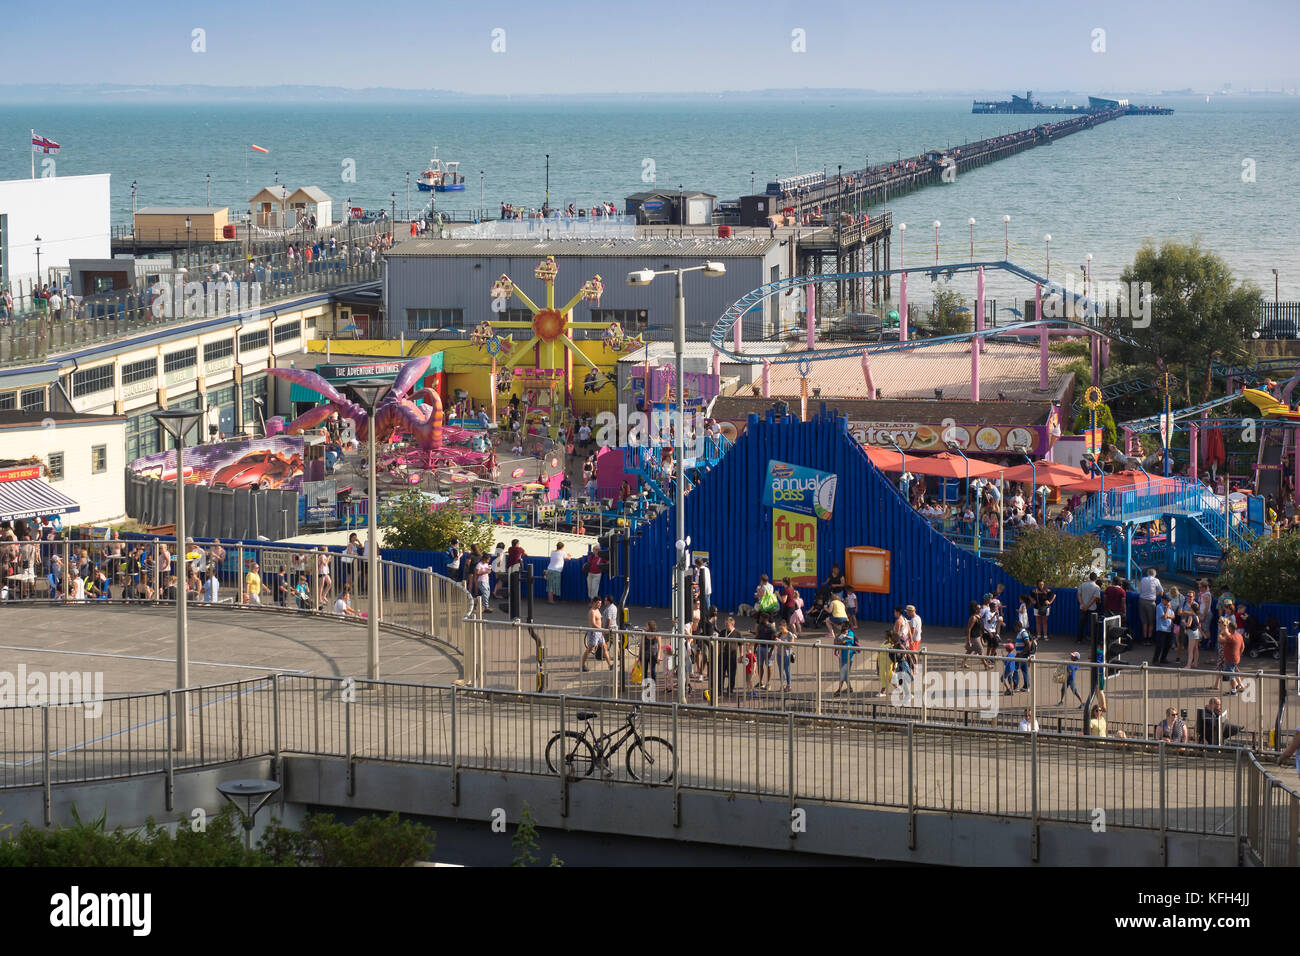 SOUTHEND-ON-SEA, ESSEX:  View over Adventure Island Fun Park to the Pier - Stock Image